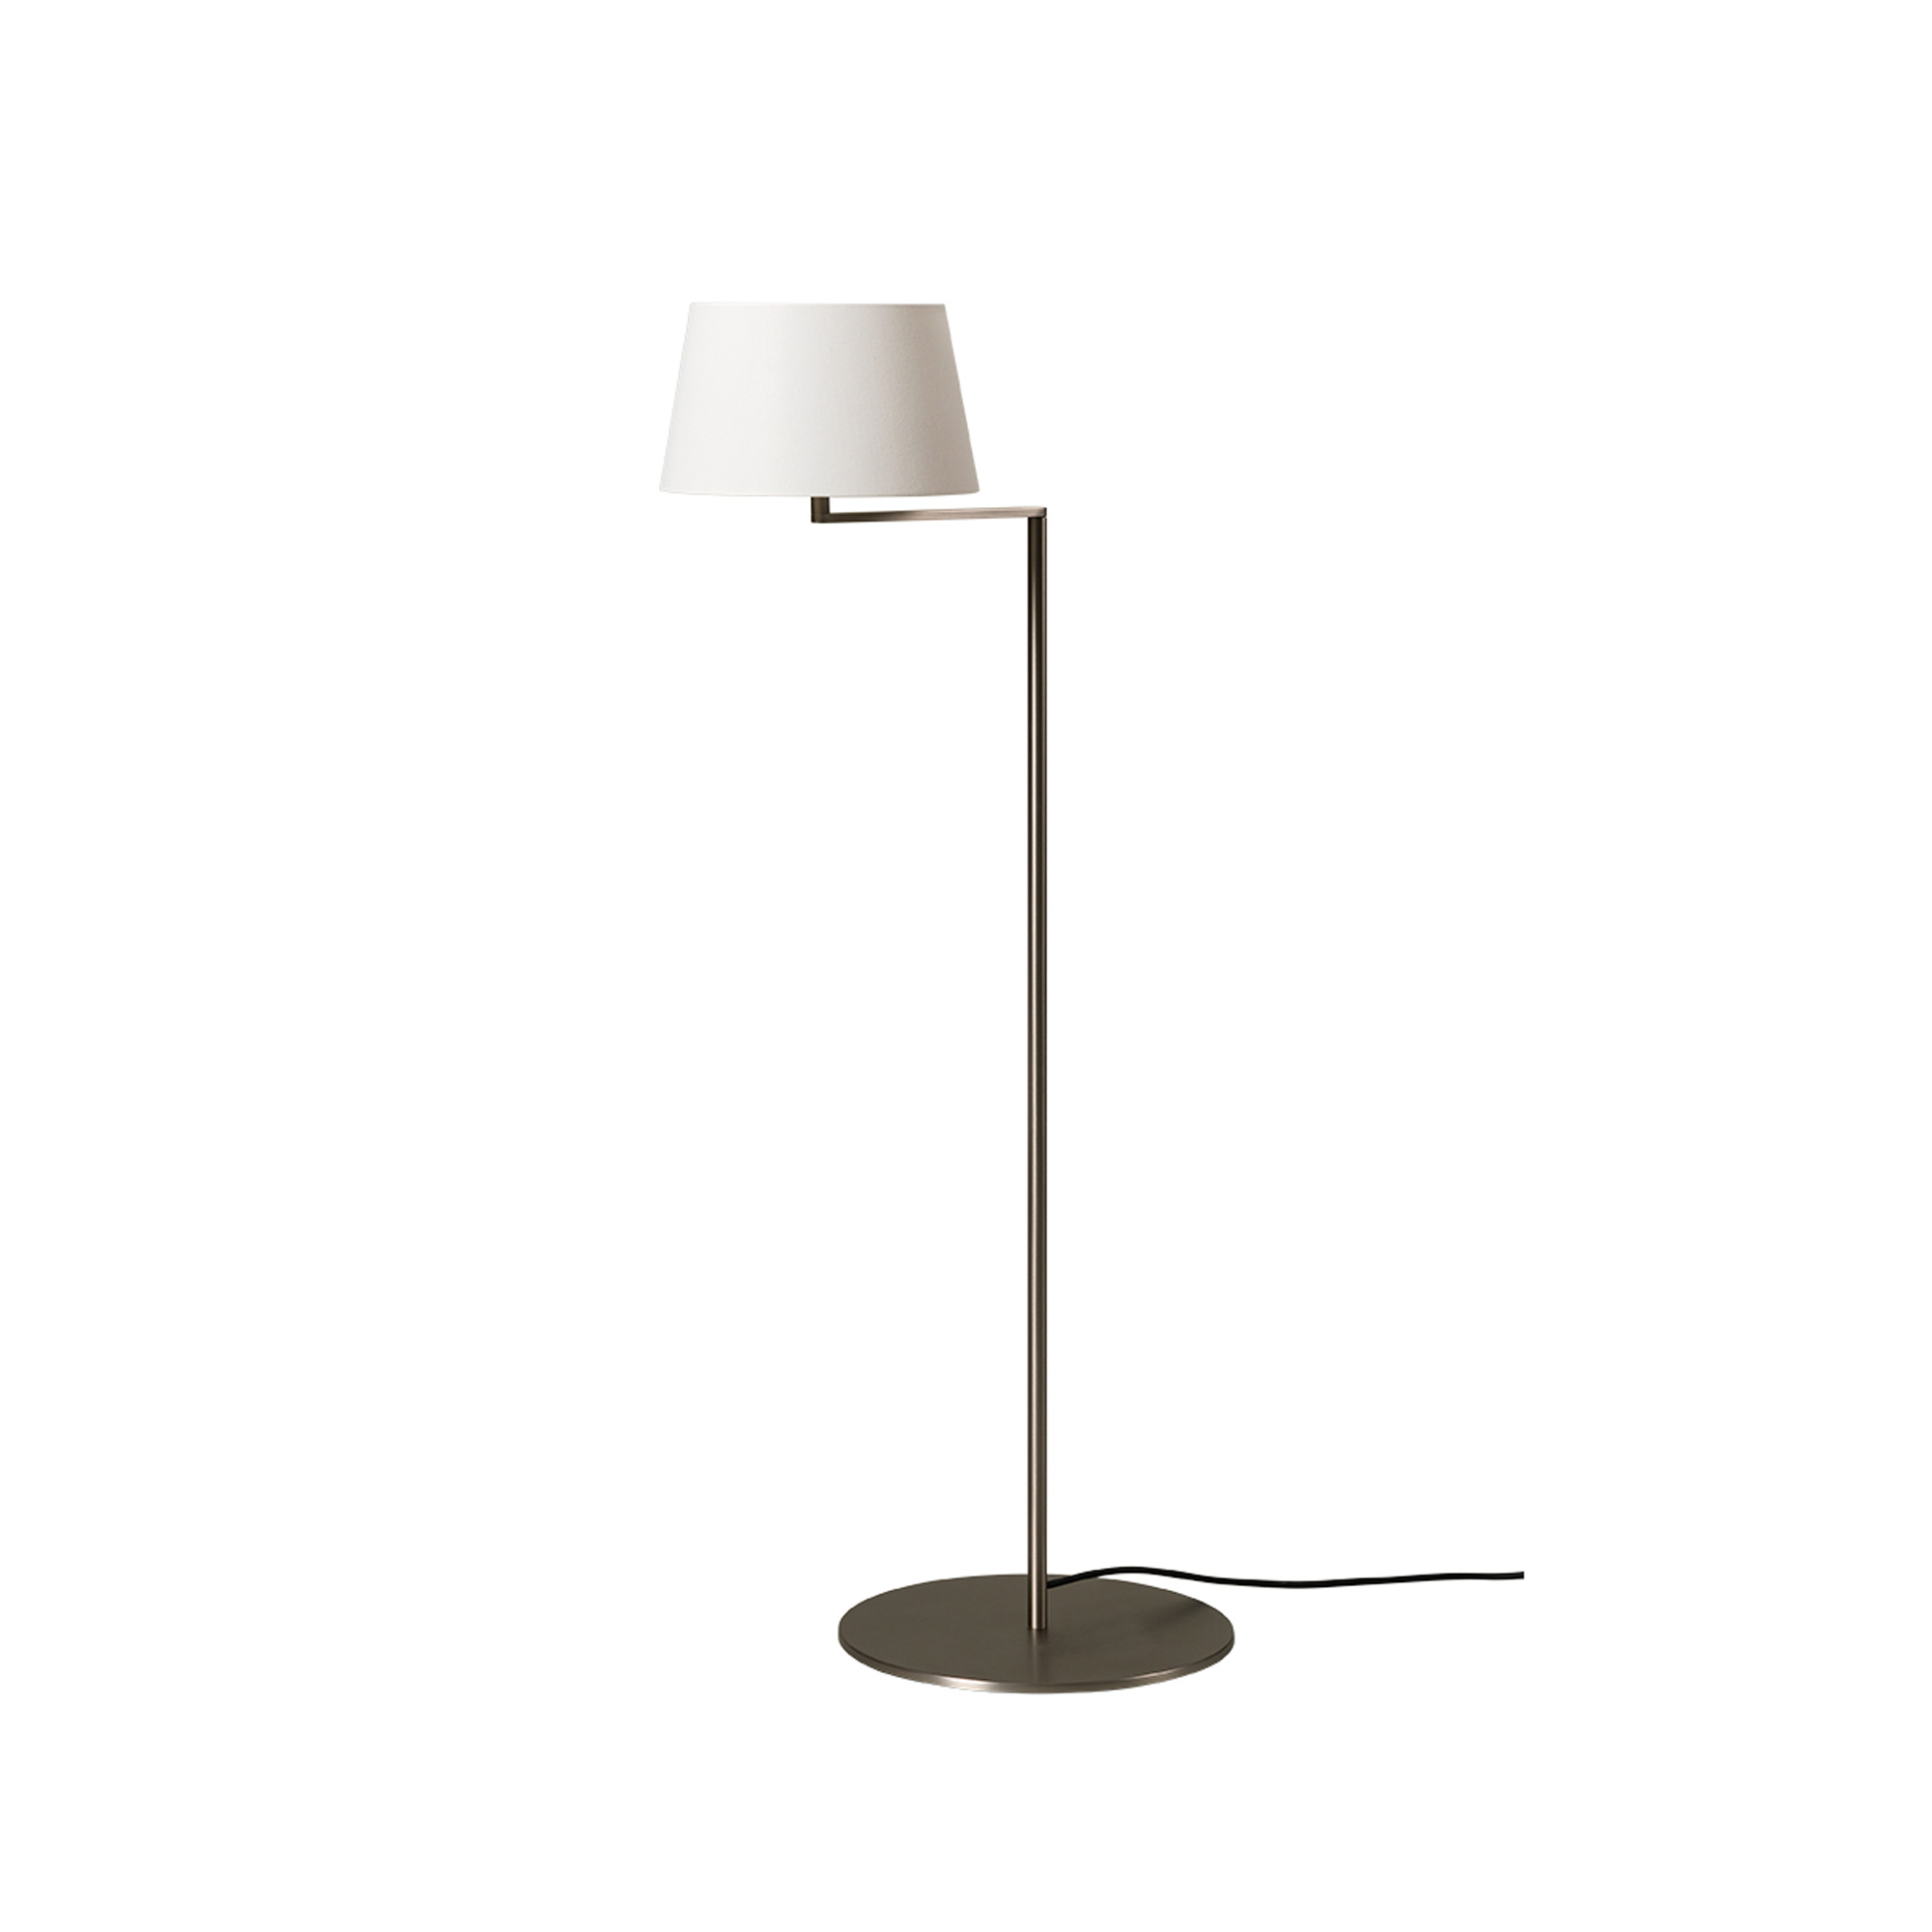 Americana Floor Lamp - Enthralled by the idea of enhancing Hansen's remarkable geometry, Milá's Americana series is also based on a swing arm, although here the arm is a single section with a right-angled bend. Accordingly, the head of the shaft becomes the swivel that enables the shades horizontal rotation, reducing the lever effect. The arm can be moved towards you or away from you without shifting the large metal base, evoking the swing motion.  | Matter of Stuff